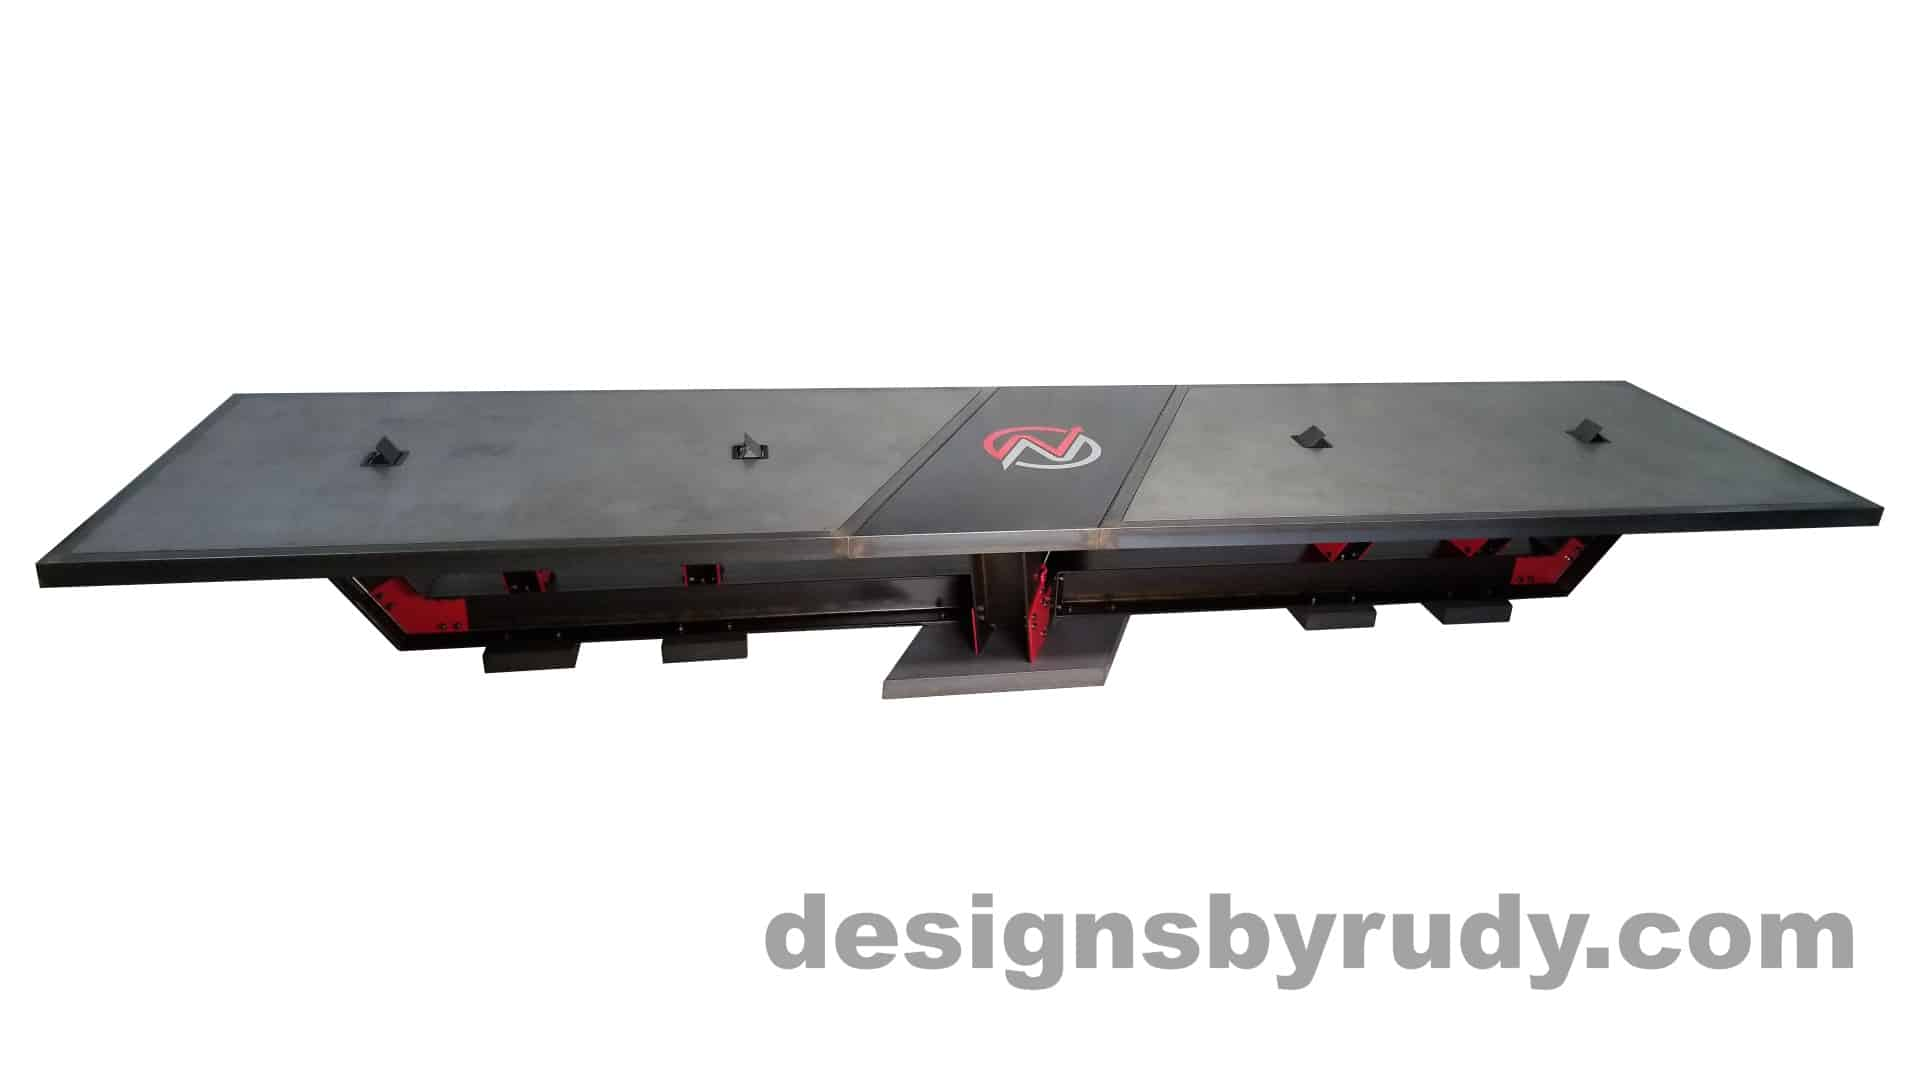 1 Steel and concrete conference table, design and fabrication by Designs by Rudy, front view